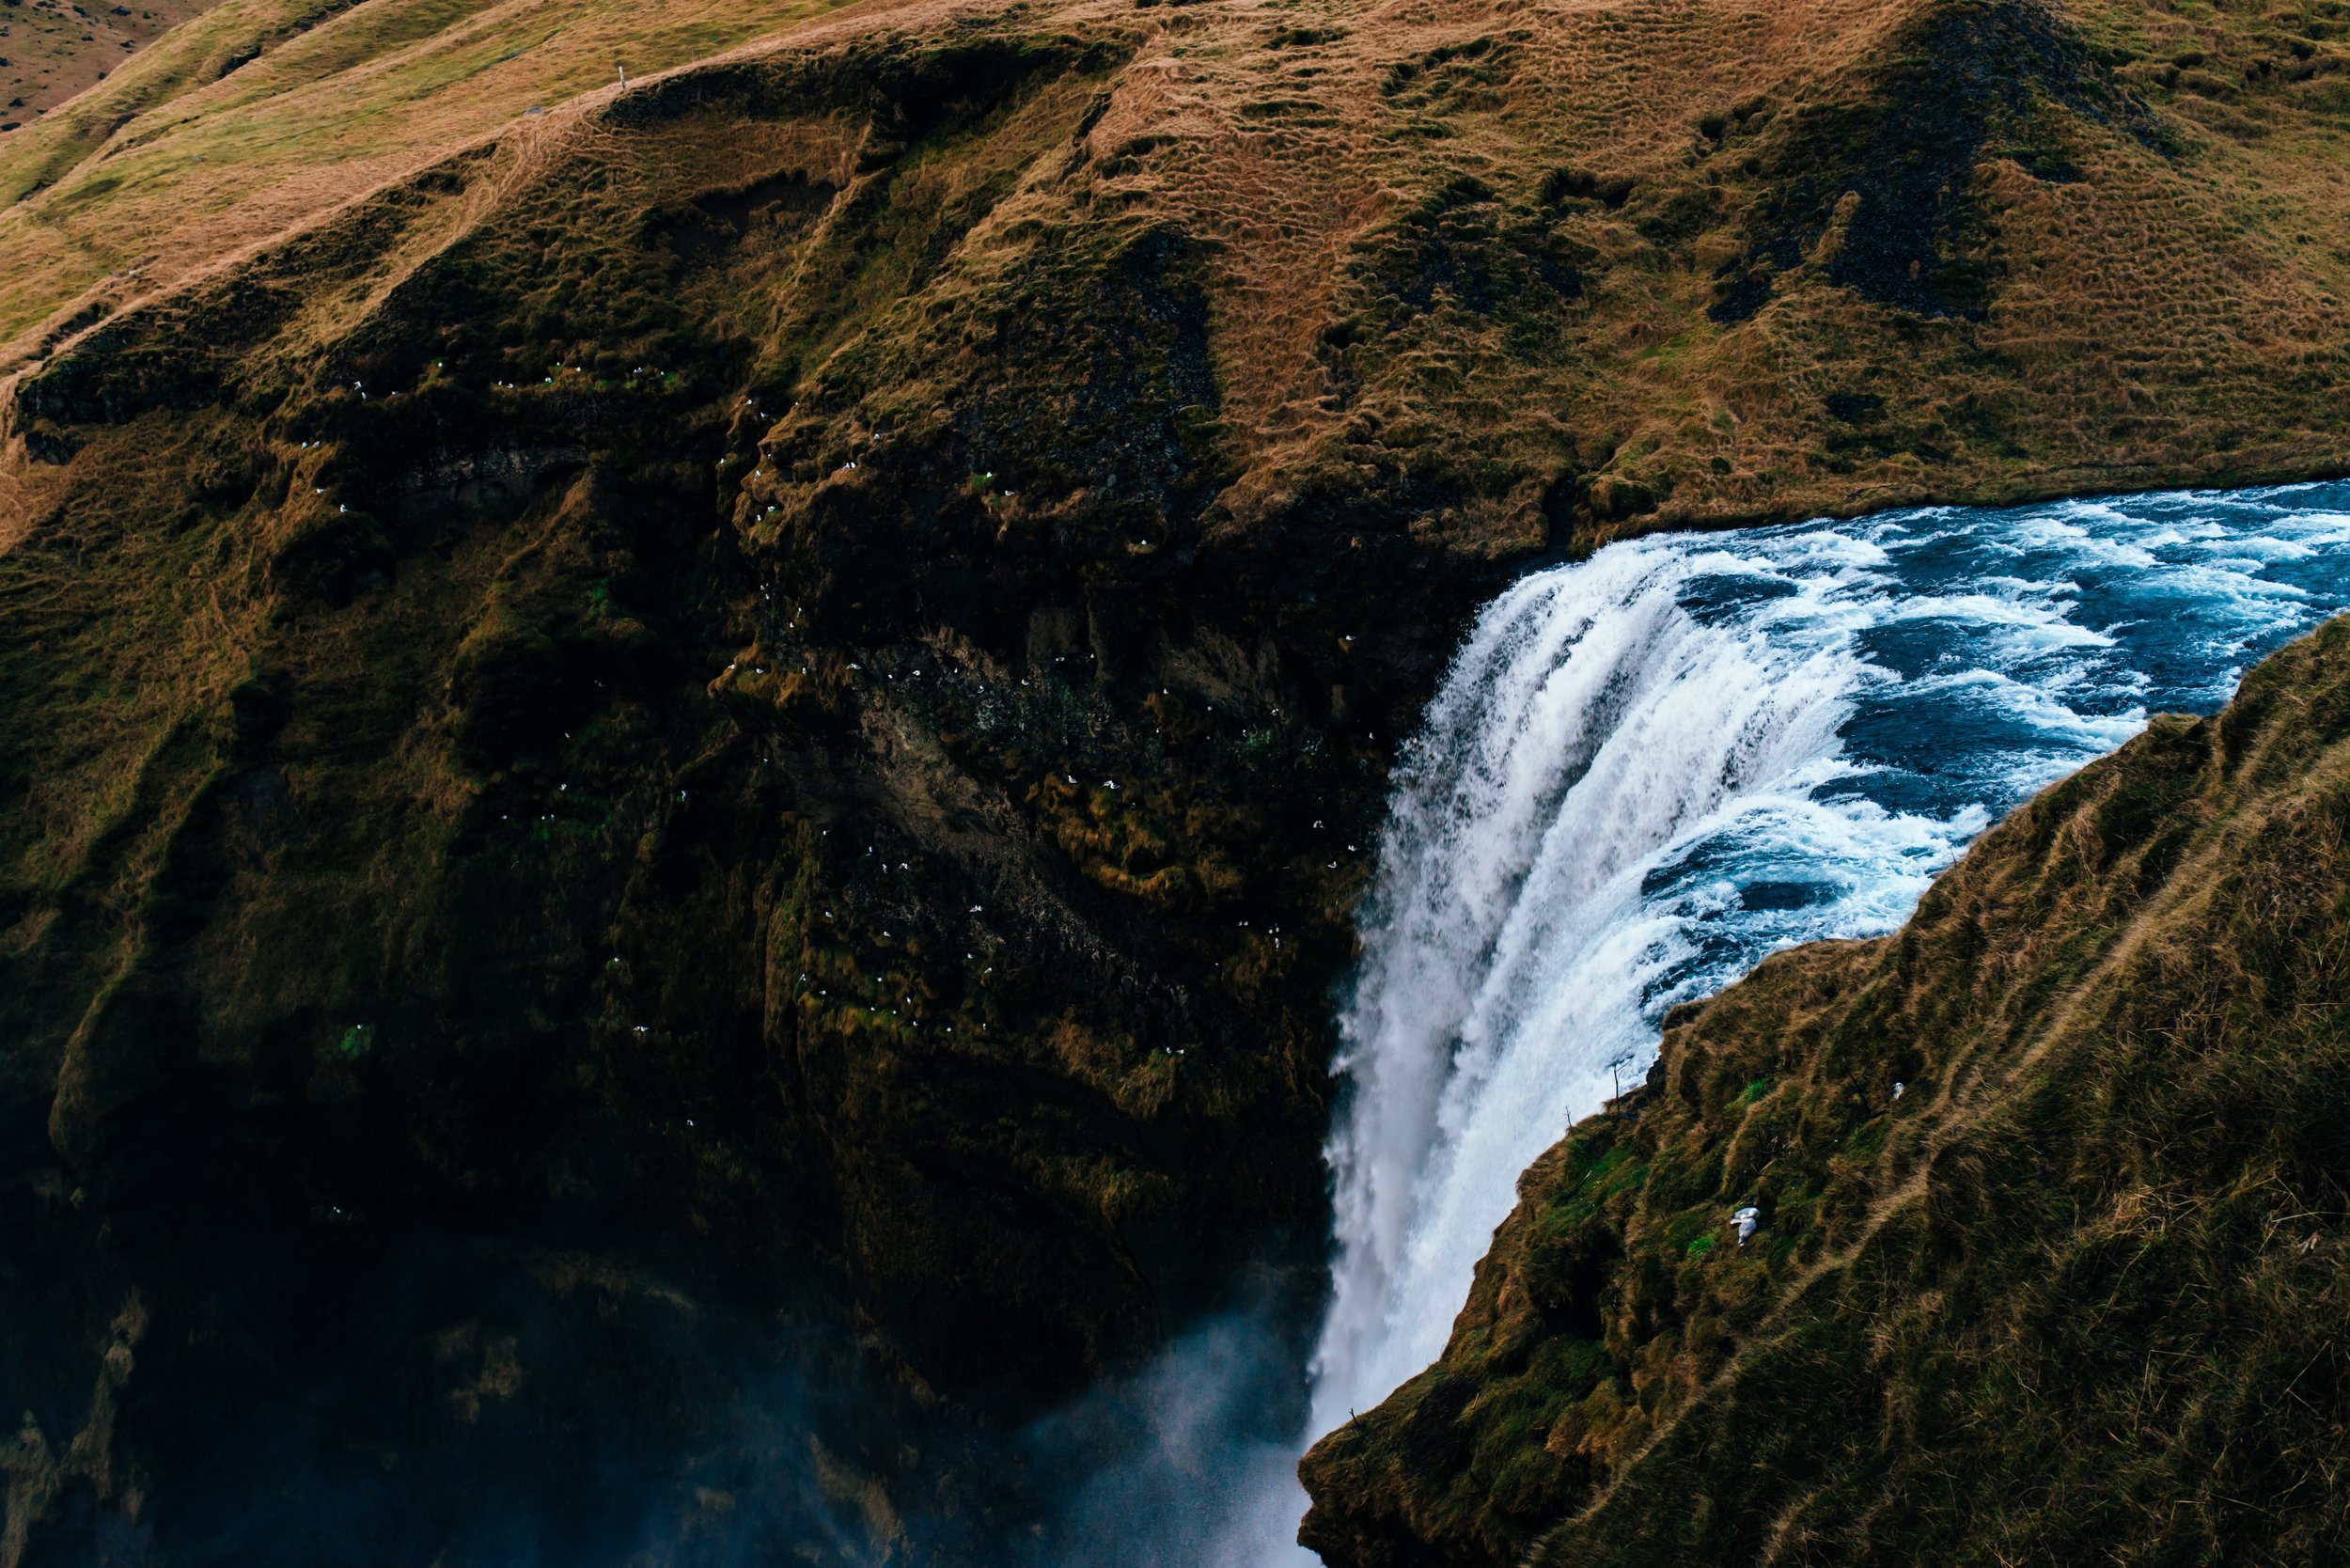 Skogafoss from above. We sure worked those quads climbing up those stairs, but it was well worth the view.